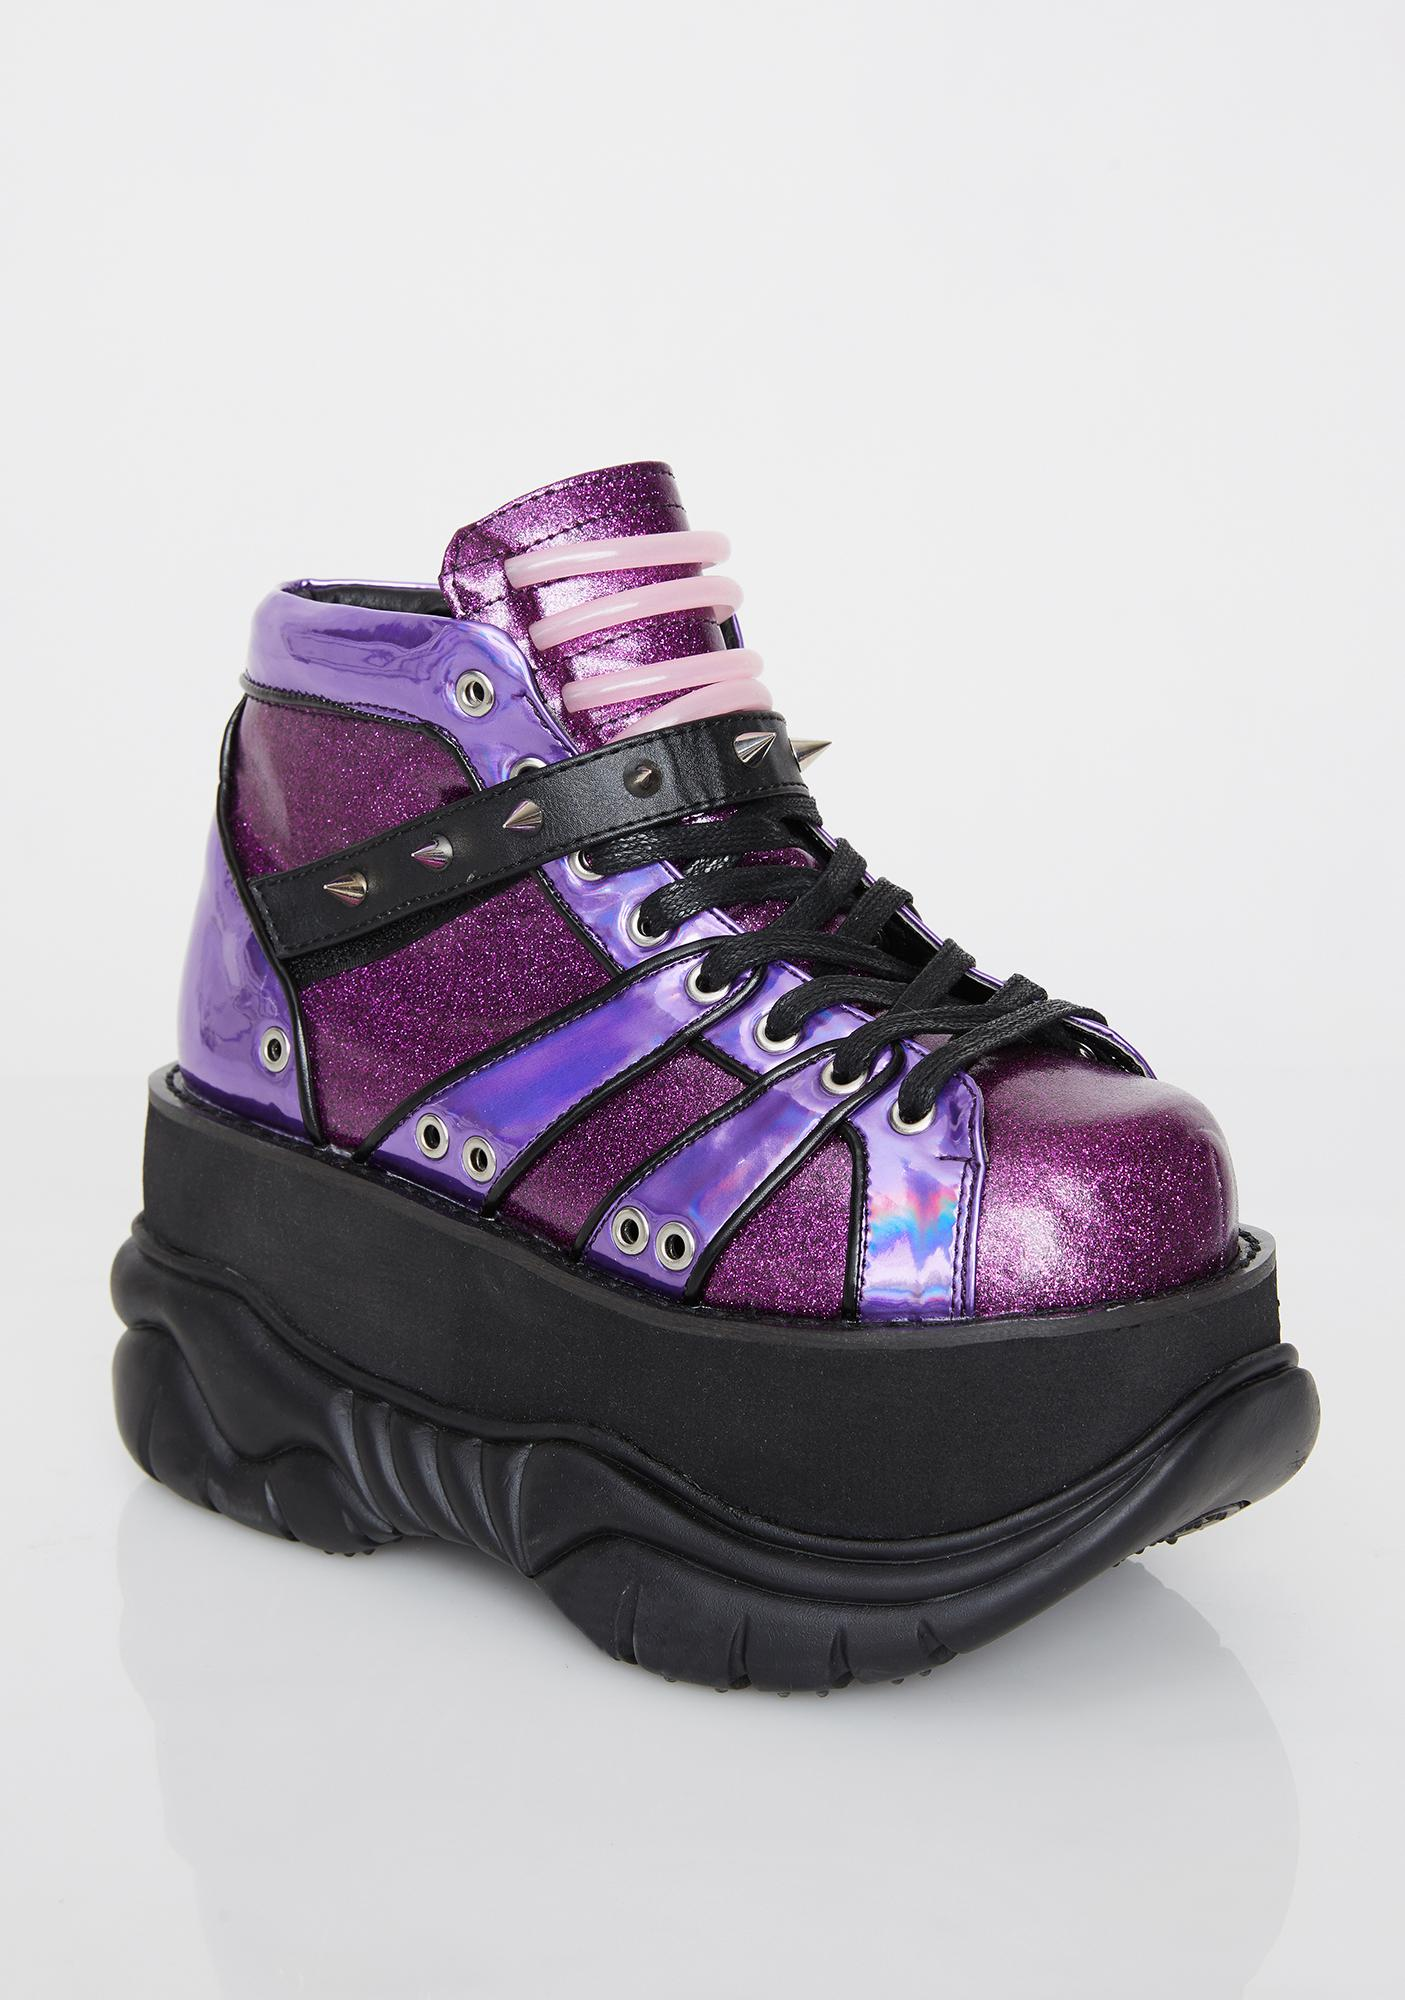 Demonia Planet Neptunez UV Platform Sneakers